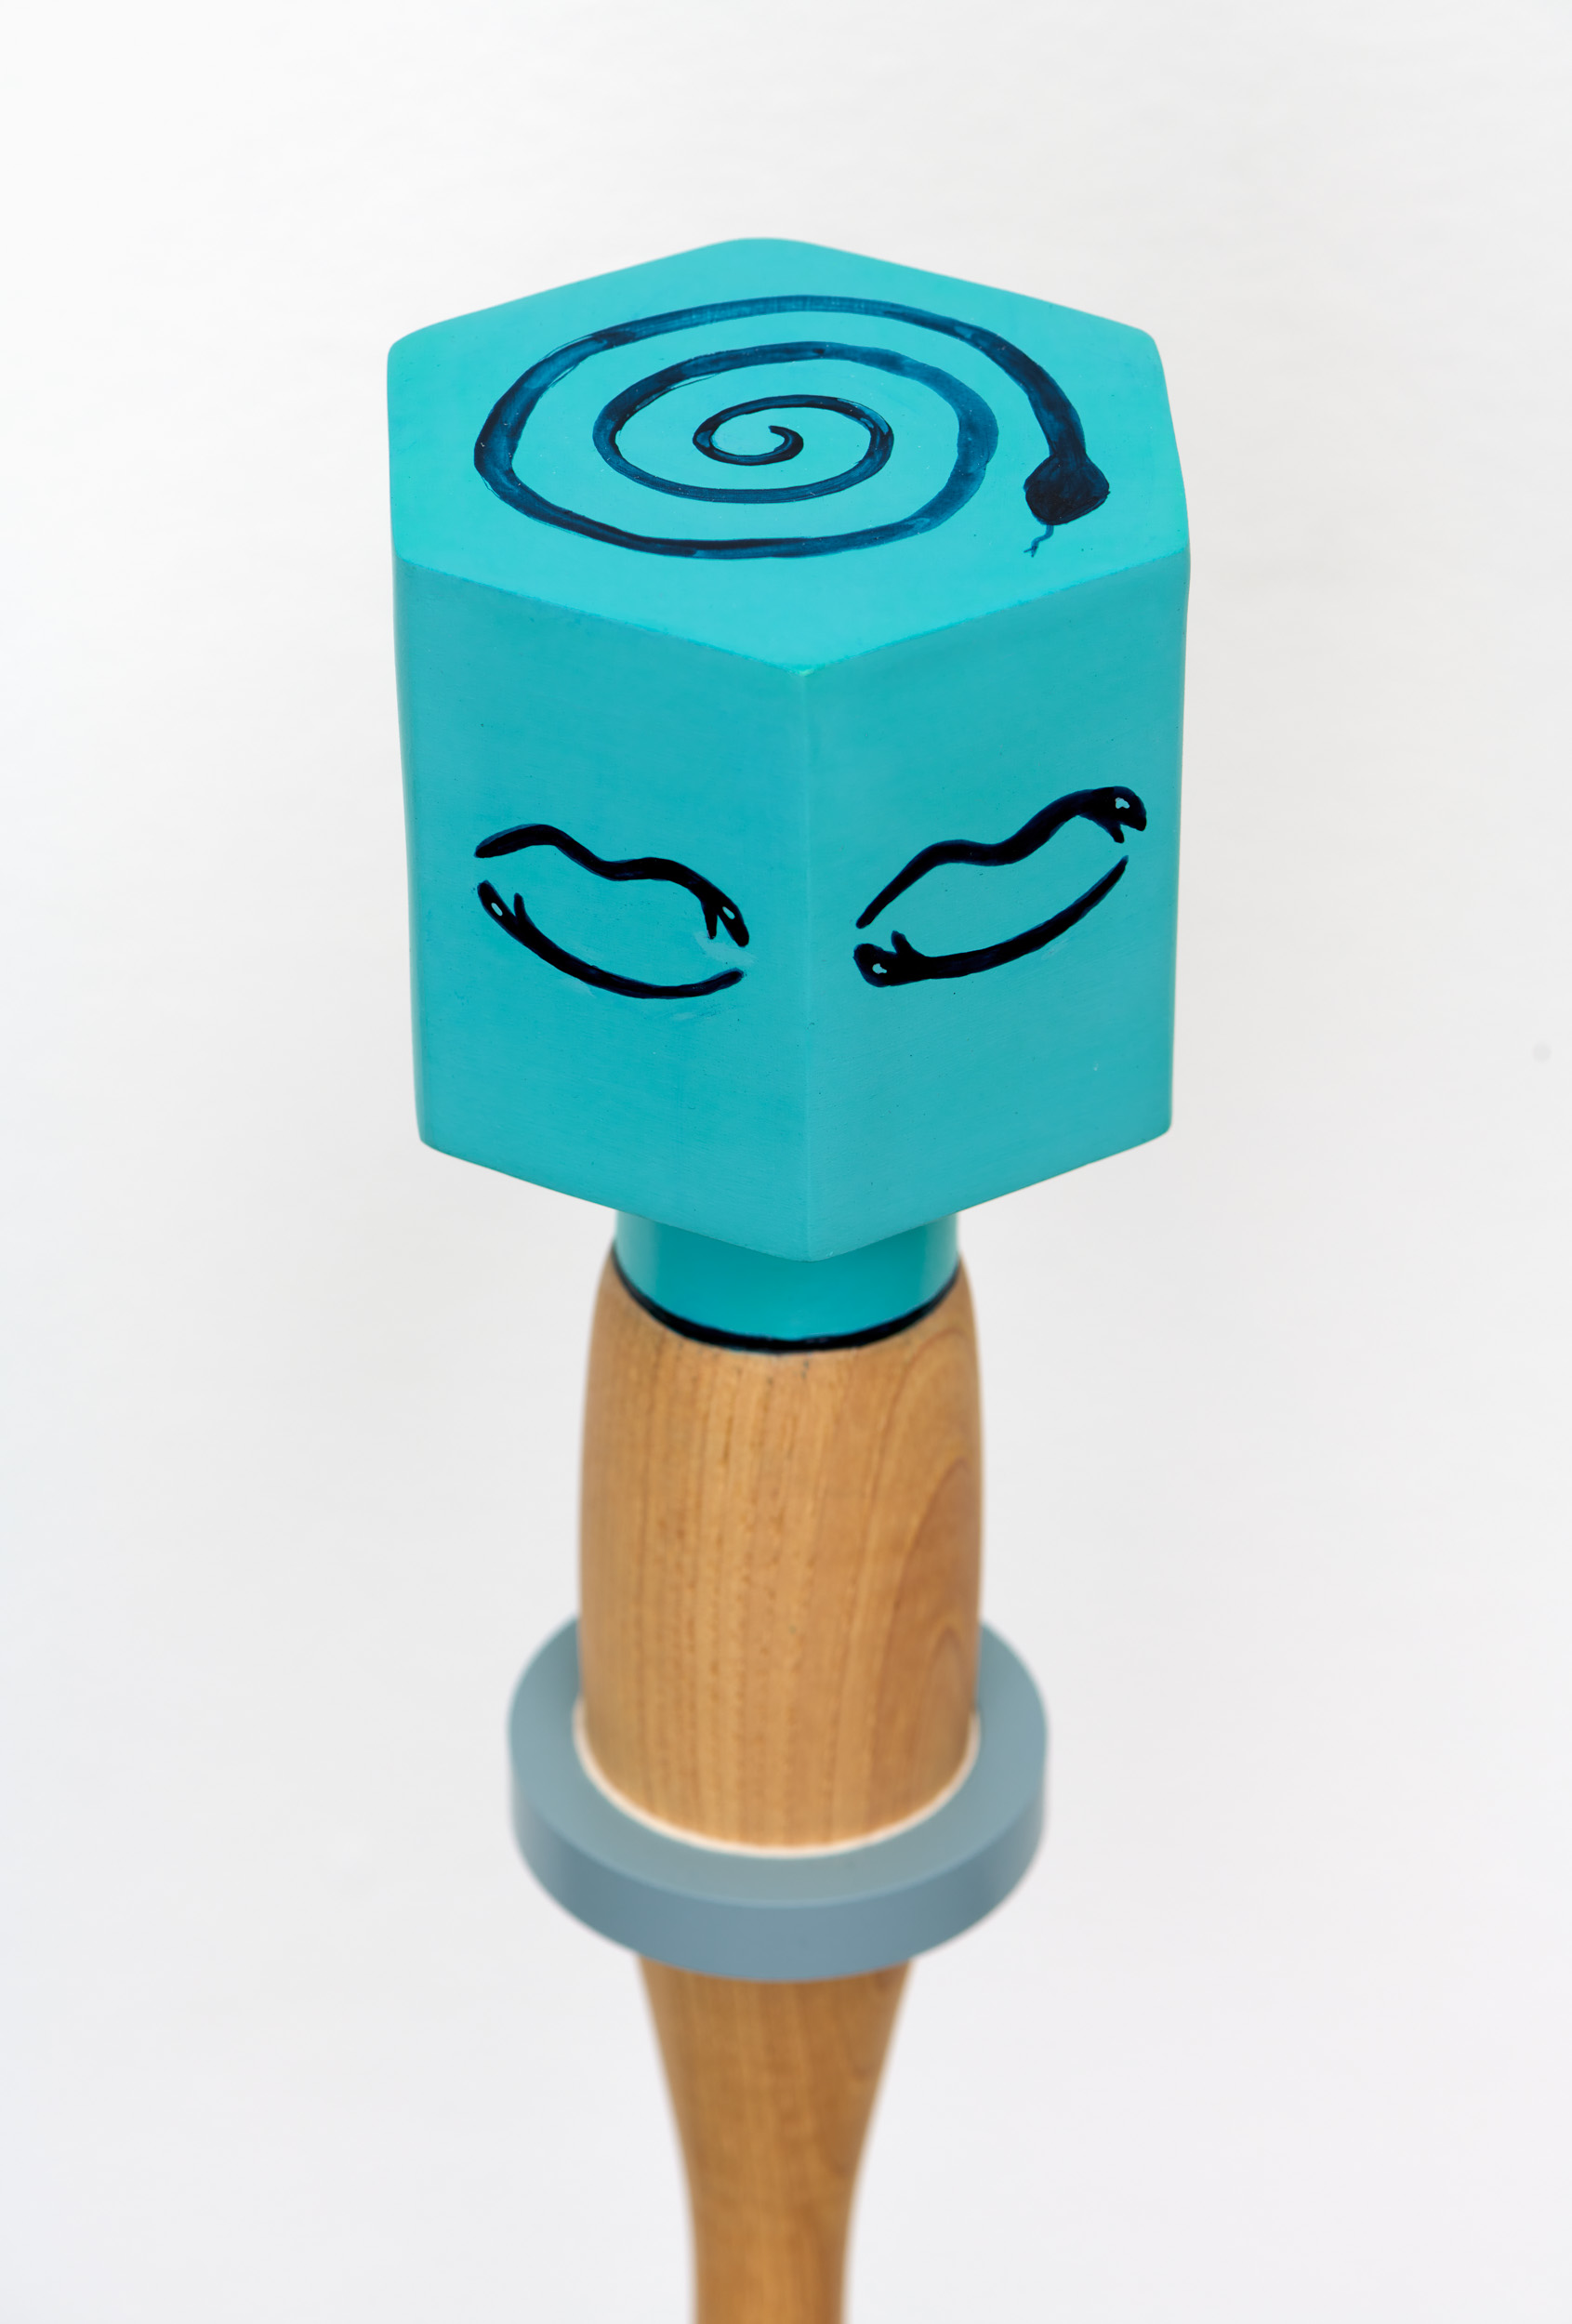 Detailed view of the top of a blue, hexagonal ceramic rattle with a wooden handle, revealing the image of a line drawing of a coiled snake on the top of the rattle.